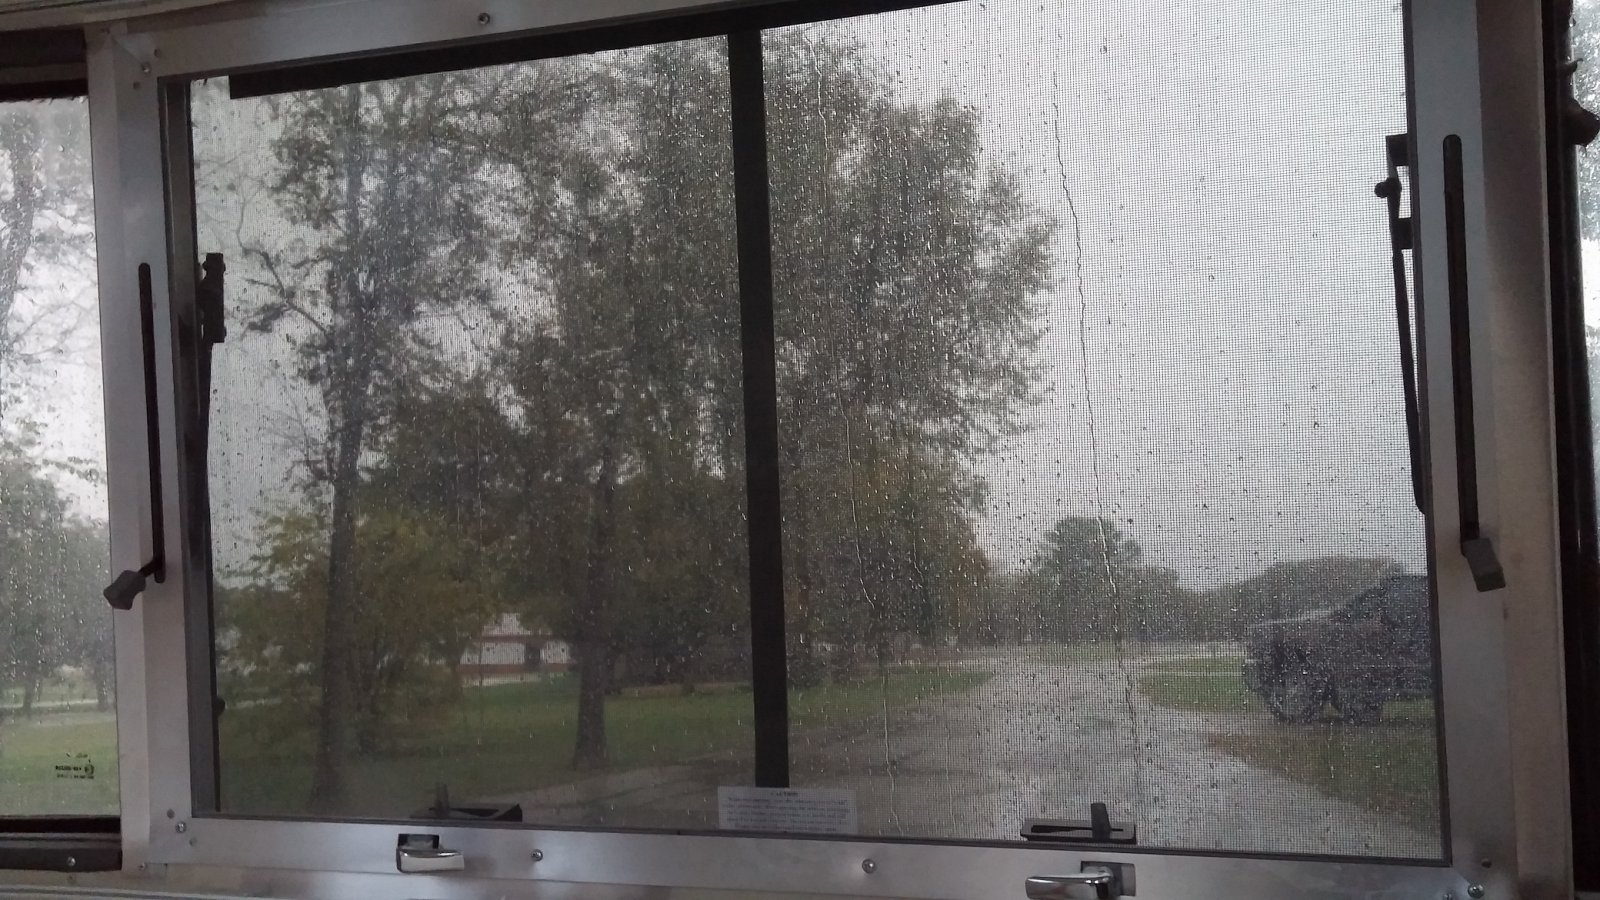 Click image for larger version  Name:LCRA Rainy Day 3.jpg Views:103 Size:326.8 KB ID:252950